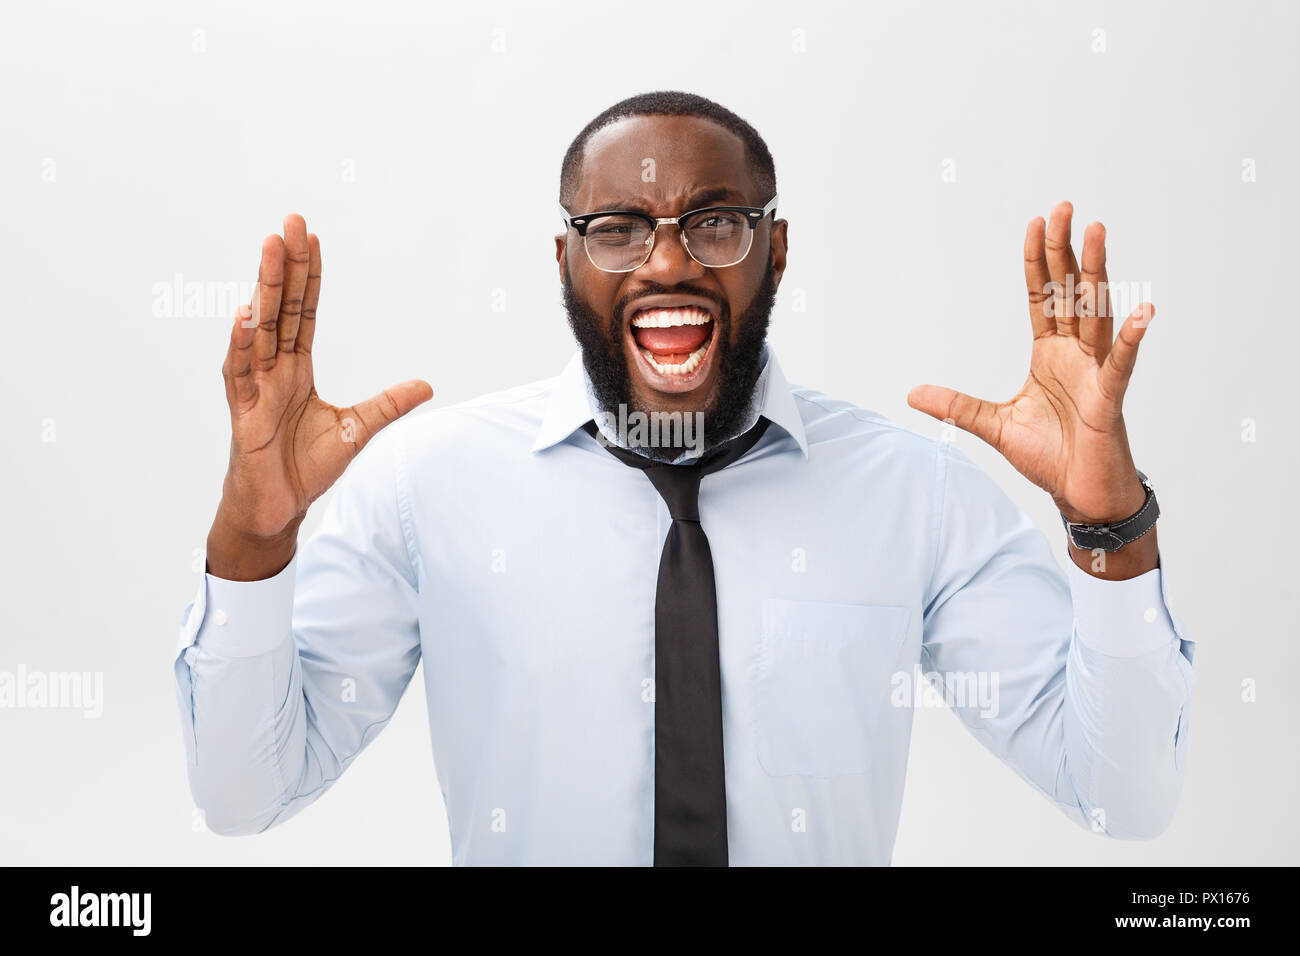 Portrait of desperate annoyed black male screaming in rage and anger tearing his hair out while feeling furious and mad with something. Negative human face expressions, emotions and feelings. Stock Photo